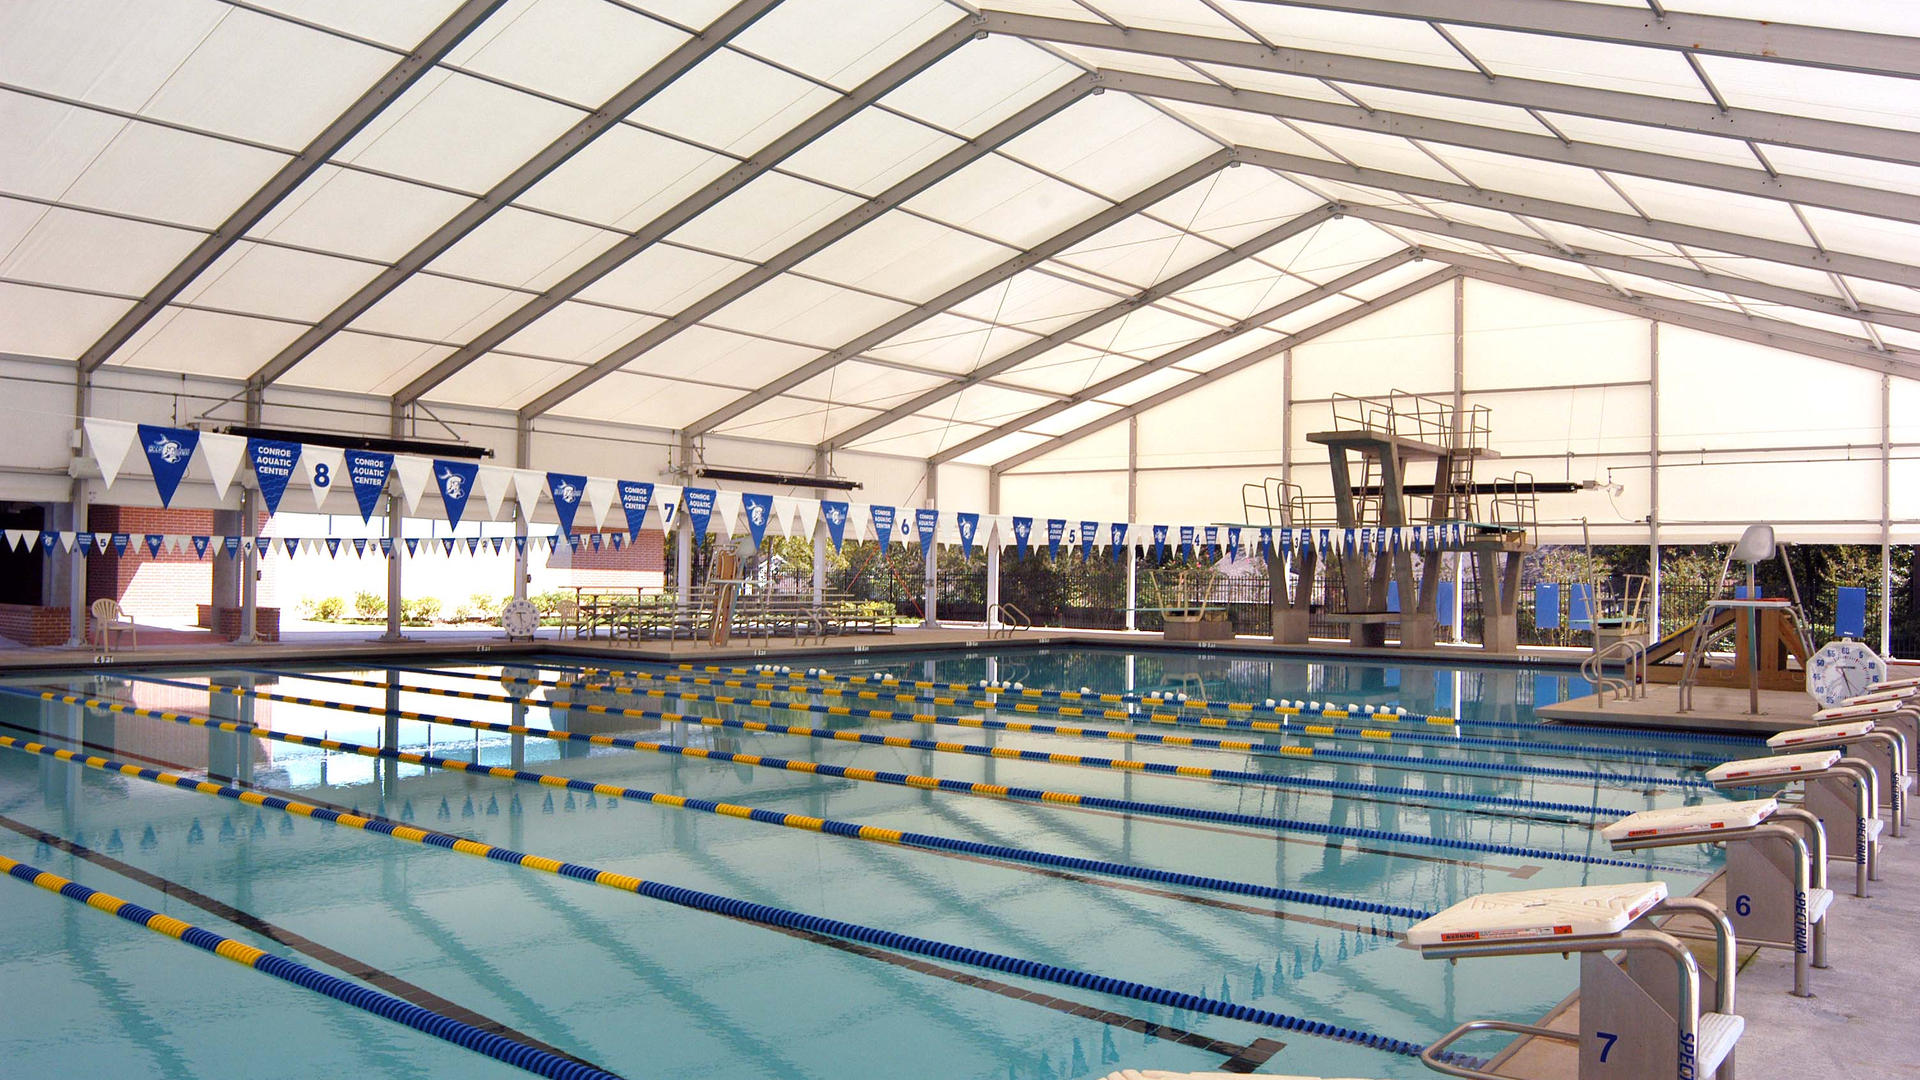 Swimming pool cover 2.jpg